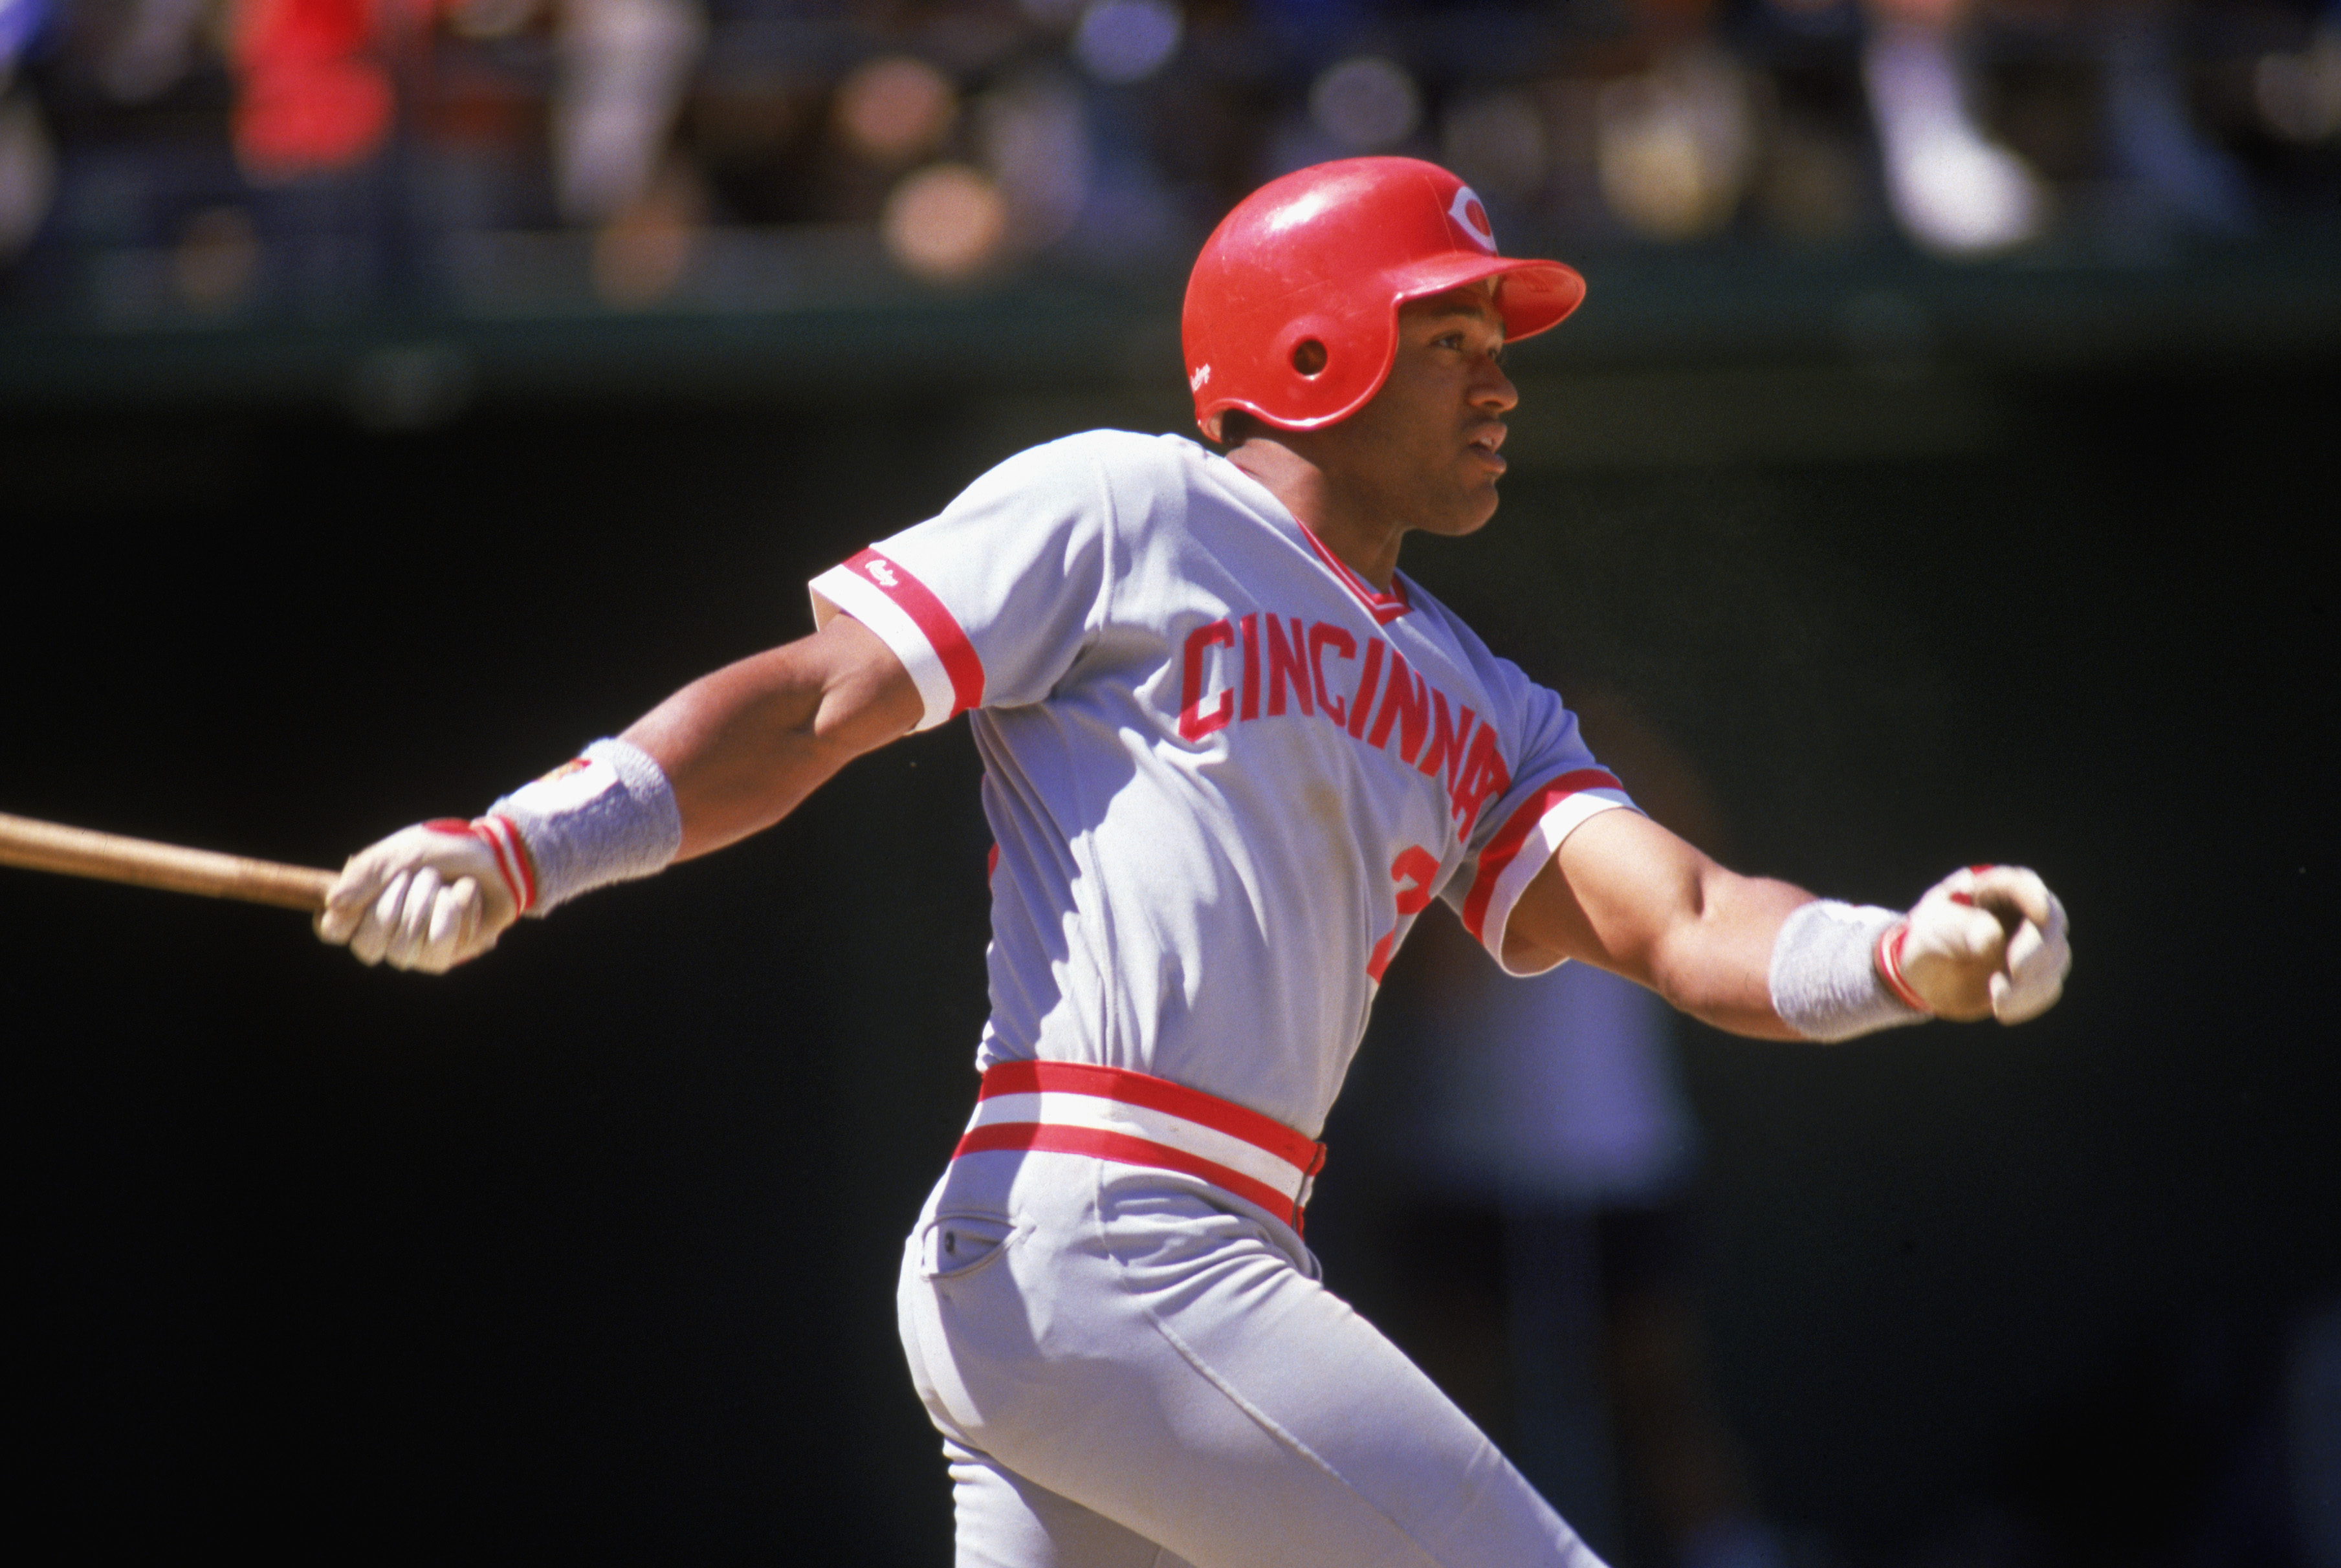 1988:  Nick Esasky of the Cincinnati Reds swings at the pitch during a MLB game in the 1988 season. ( Photo by: Jonathan Daniel/Getty Images)